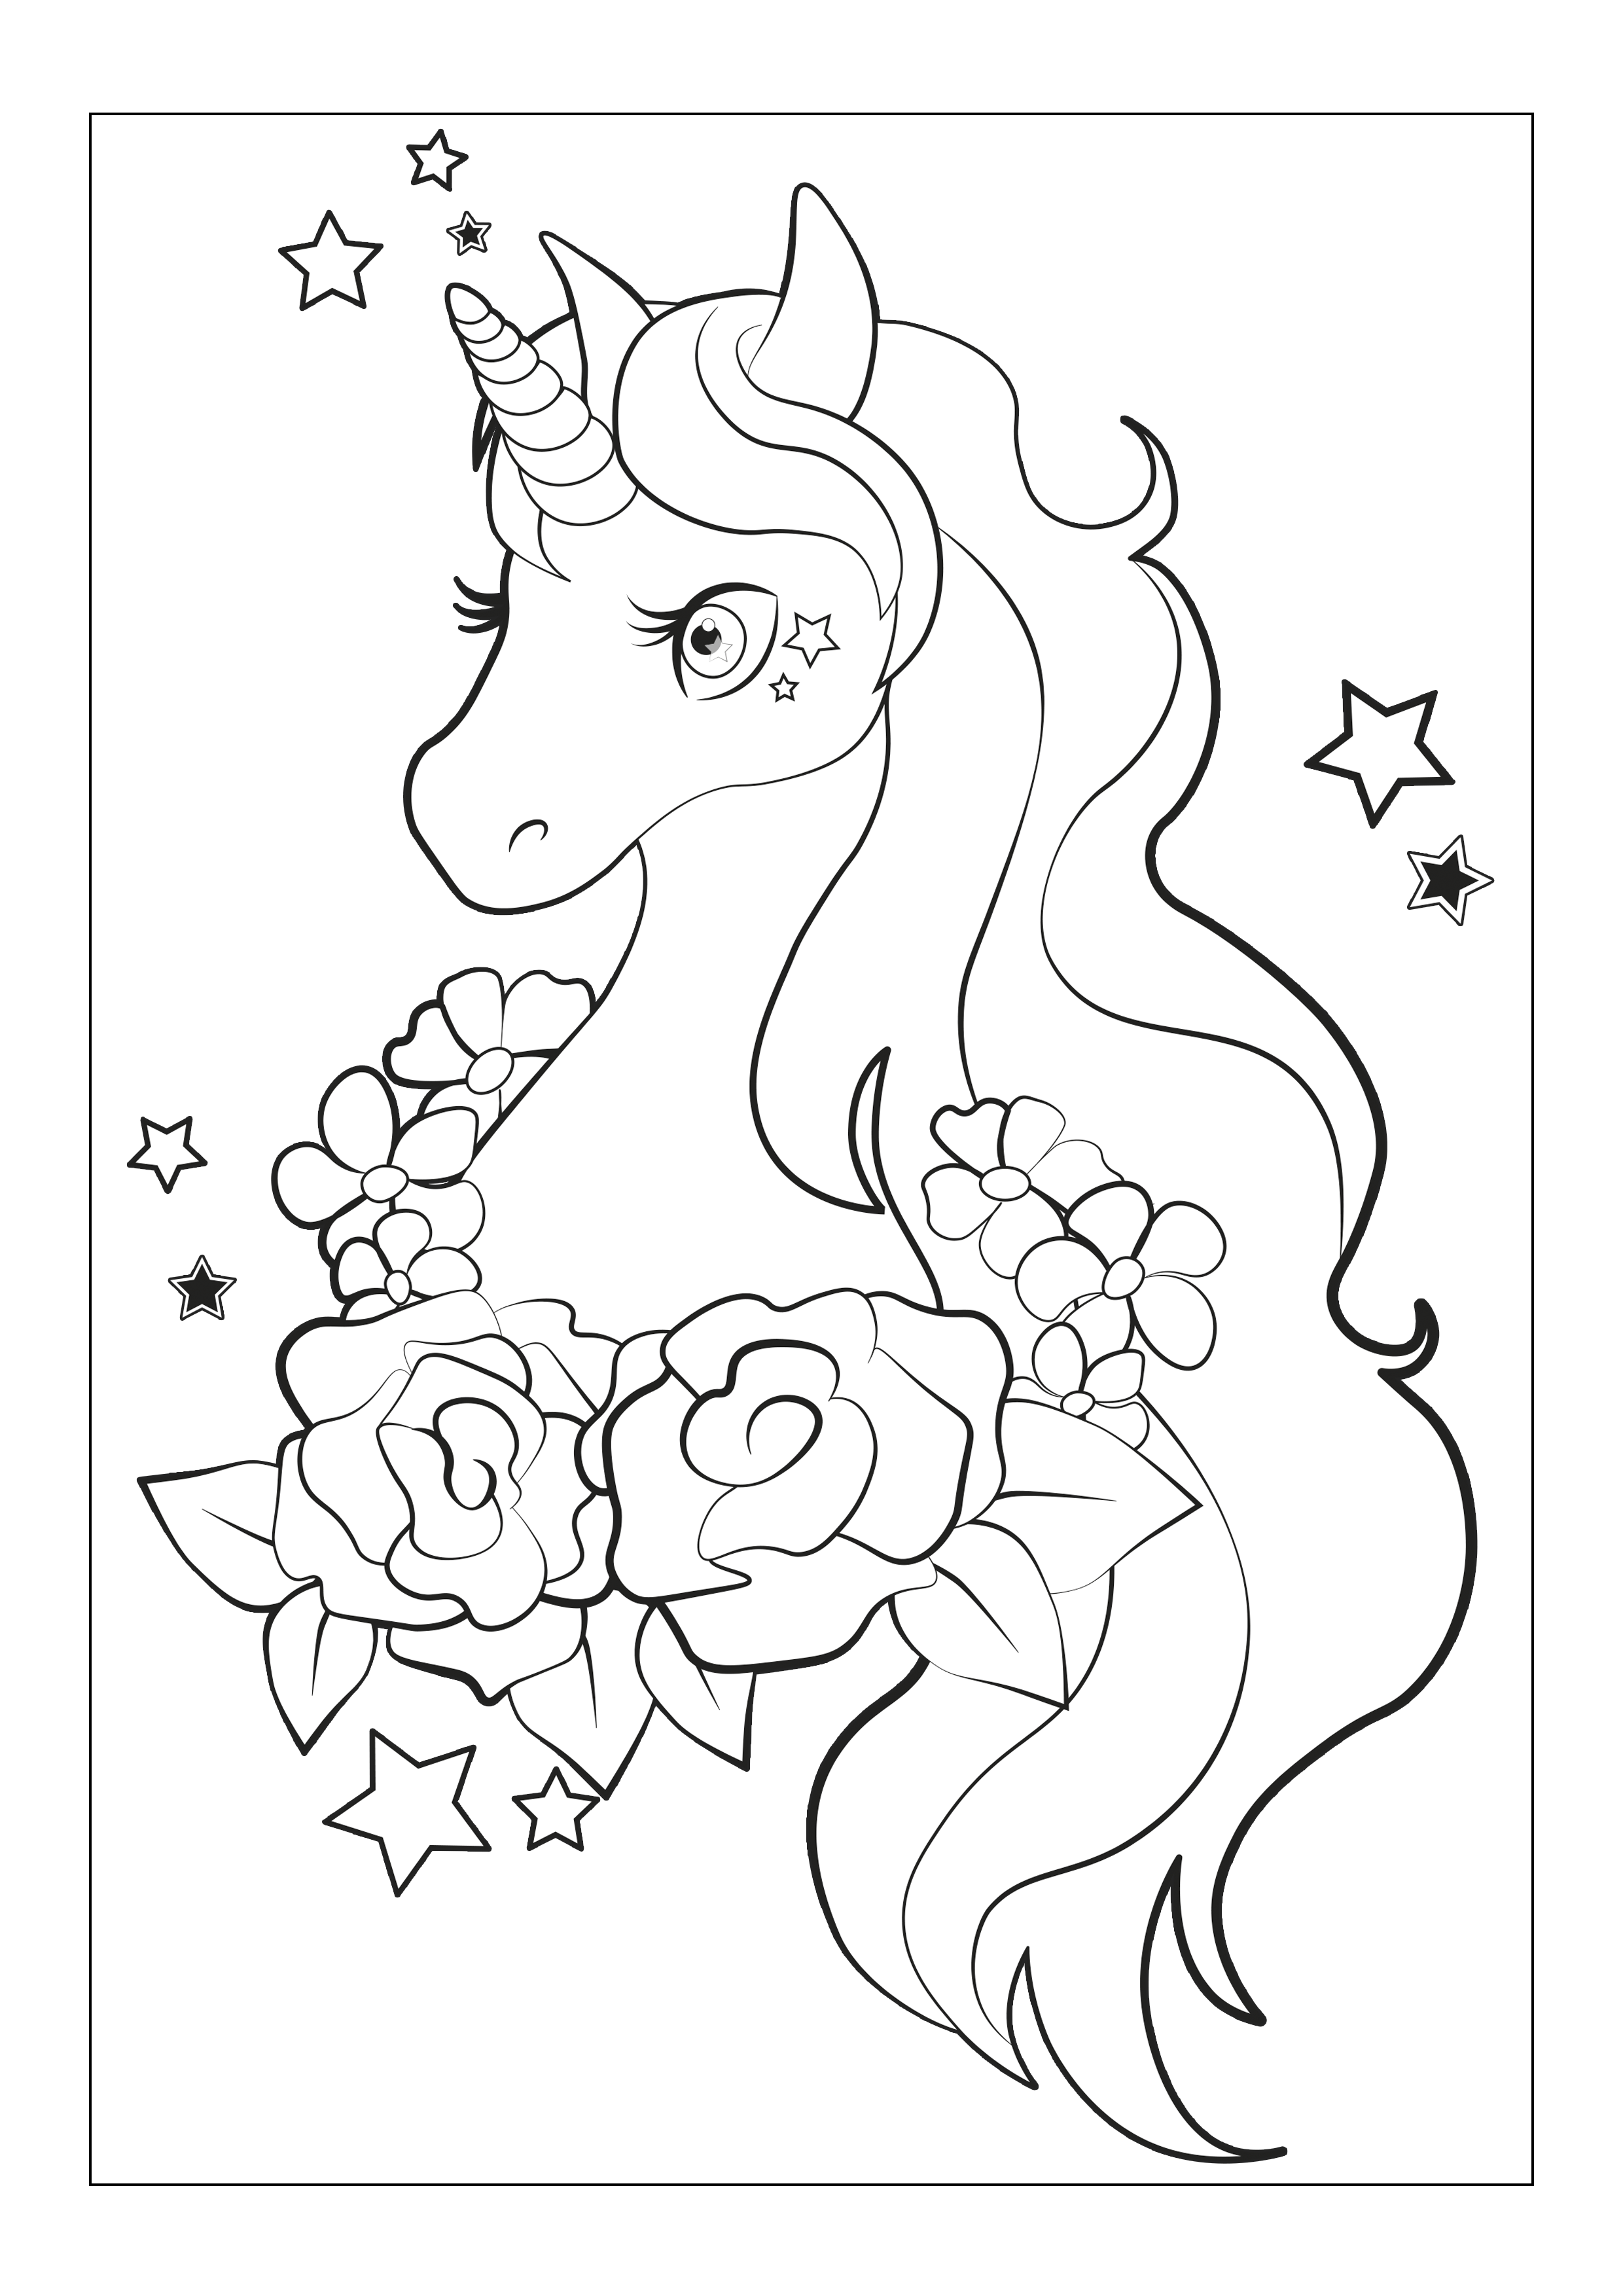 Cute Unicorn Face Coloring Pages Colouring Mermaid In 2020 Unicorn Coloring Pages Coloring Pages For Girls Mermaid Coloring Pages